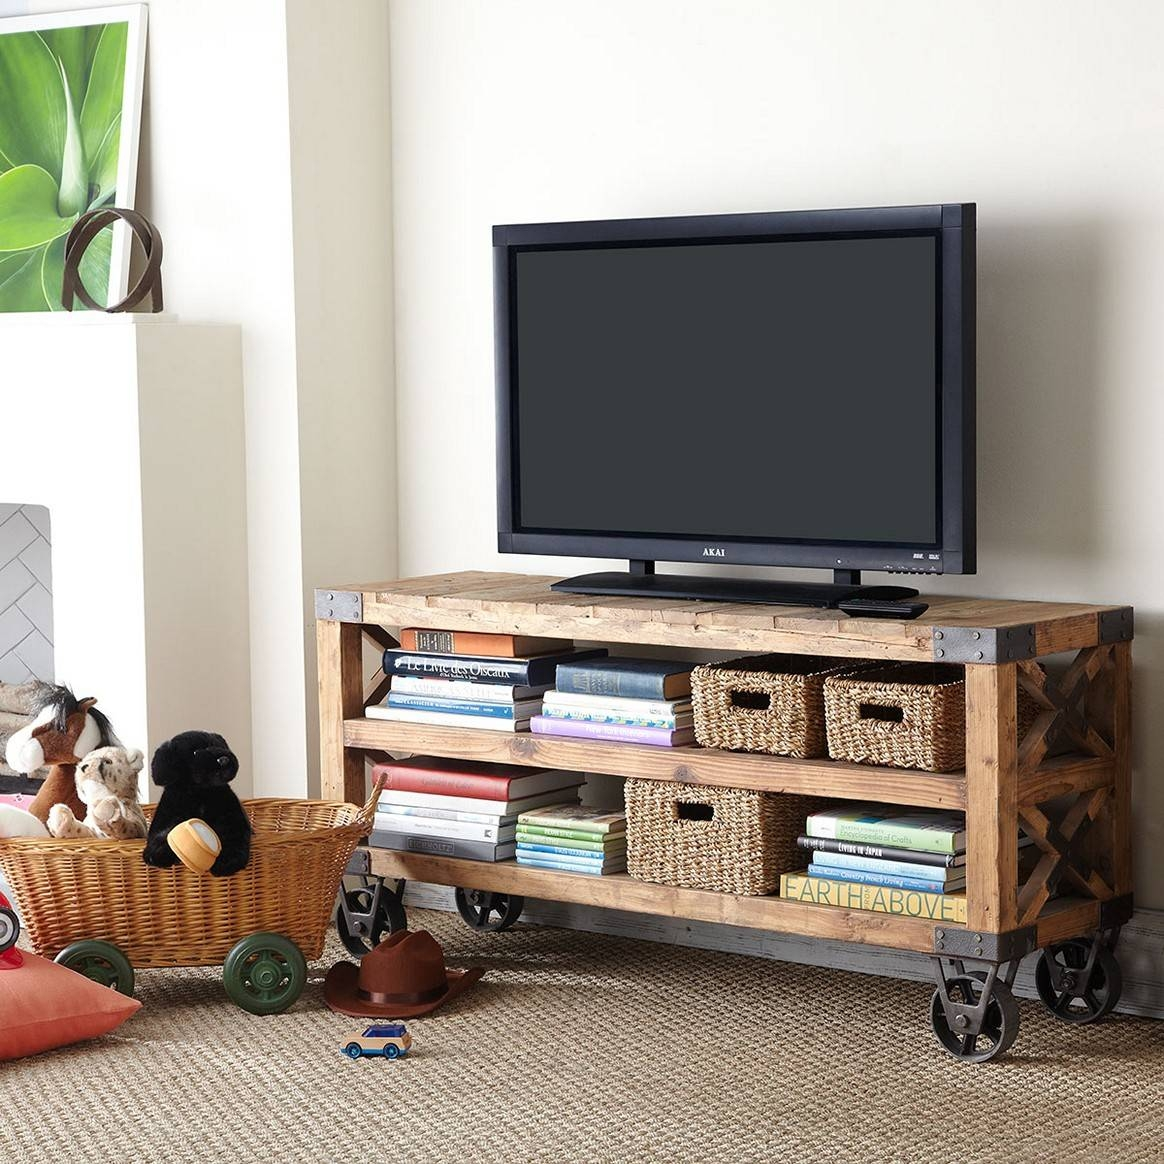 Tv Stands For Bedroom Dressers Ideas With Small Apartment Picture Intended For Tv Stands With Baskets (View 7 of 15)